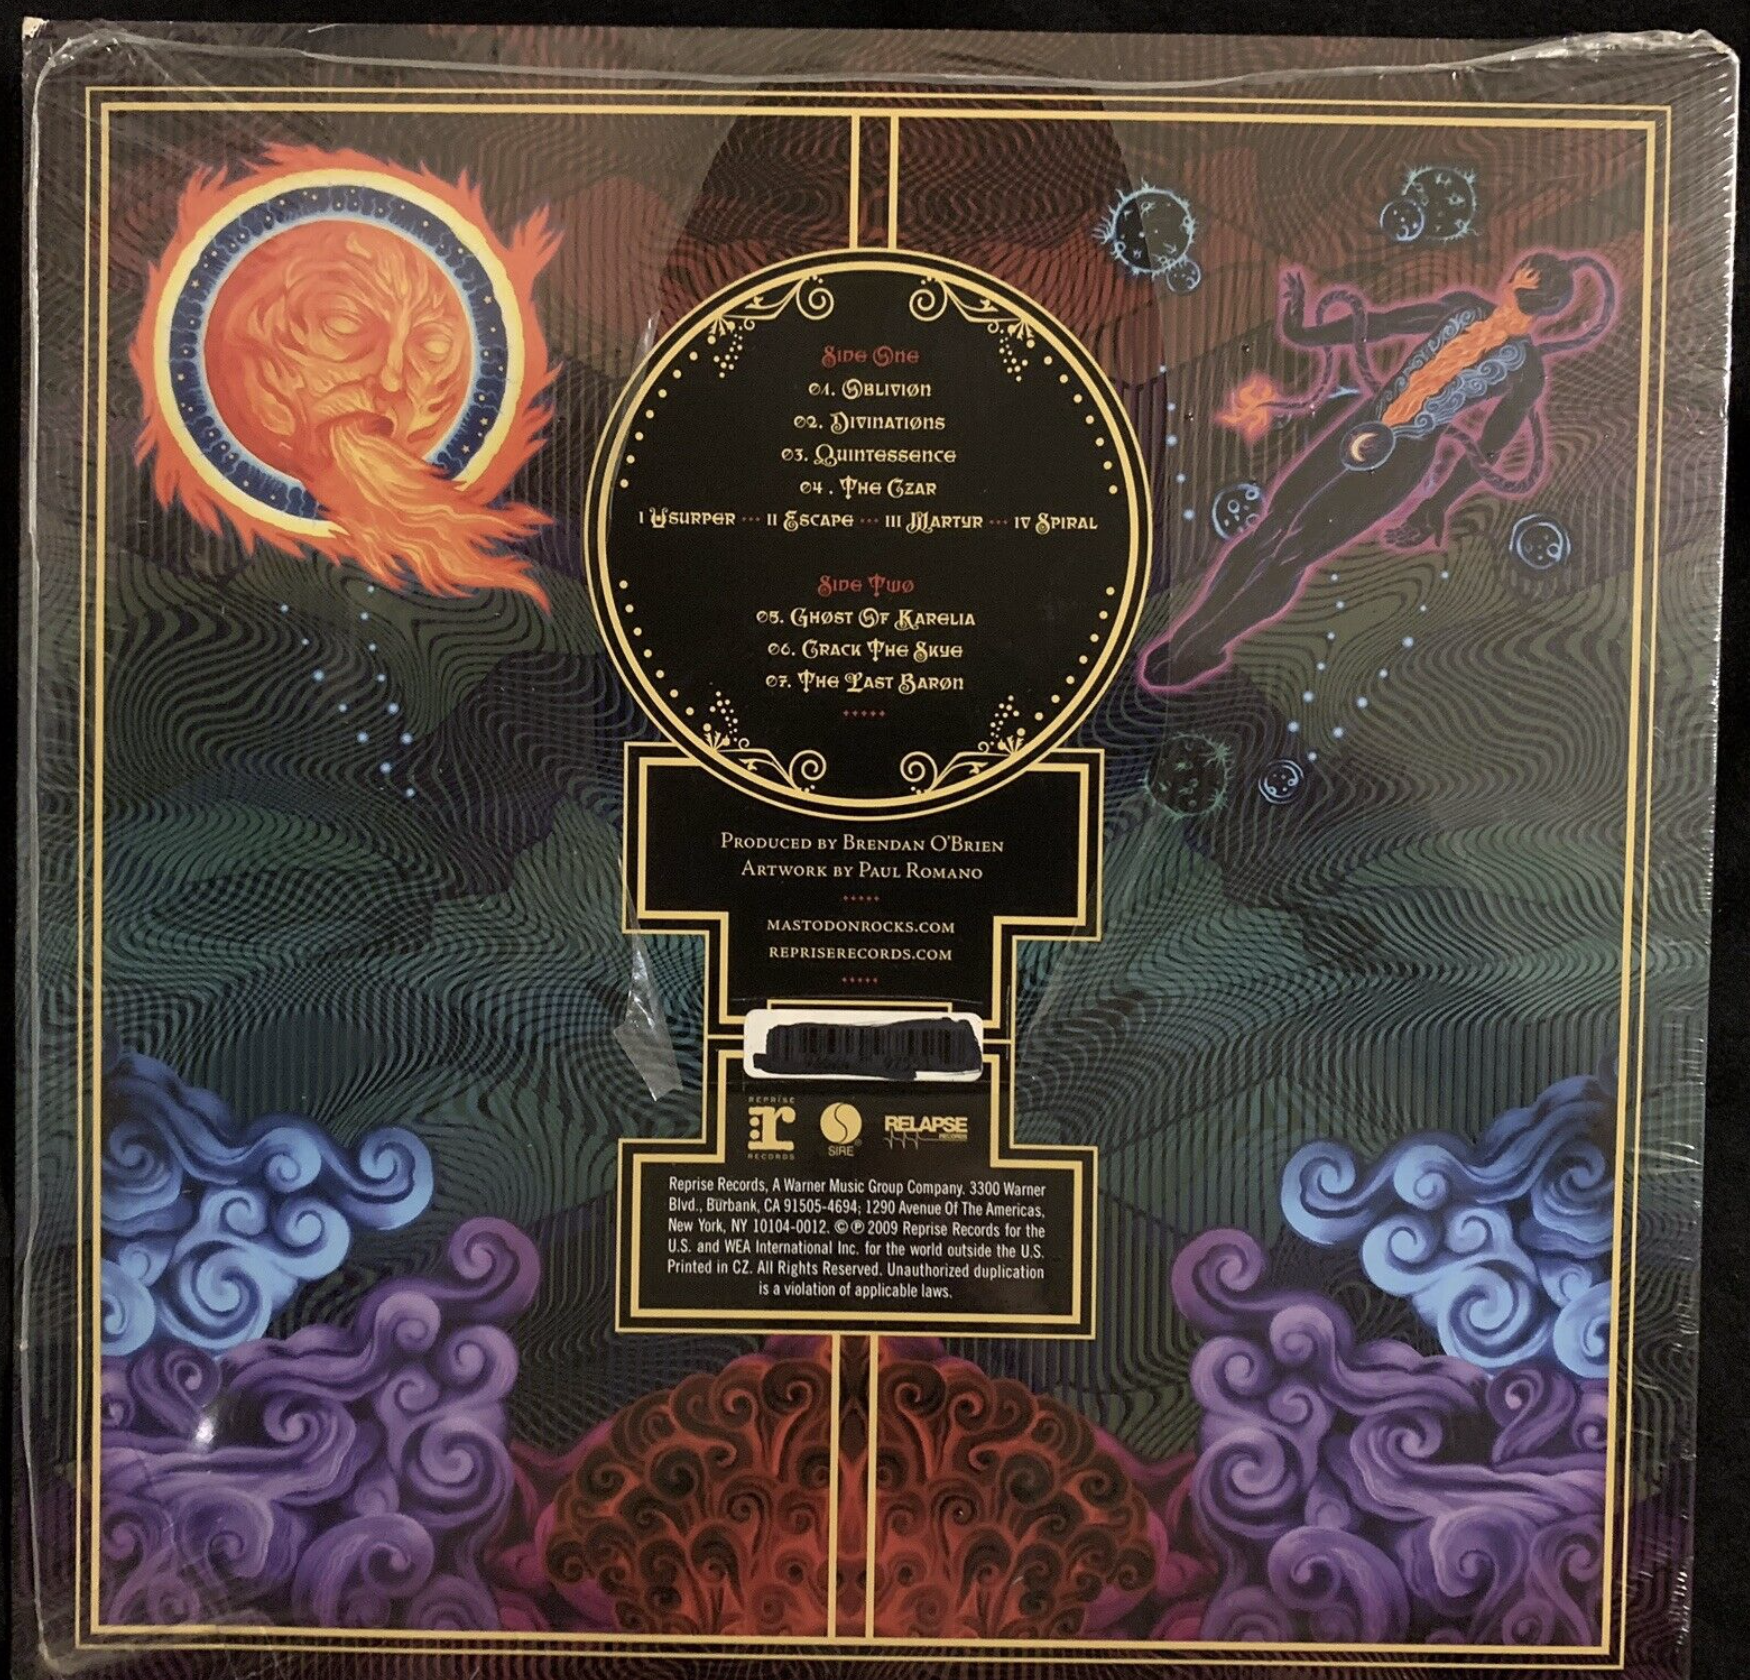 crack the Skye mastodon